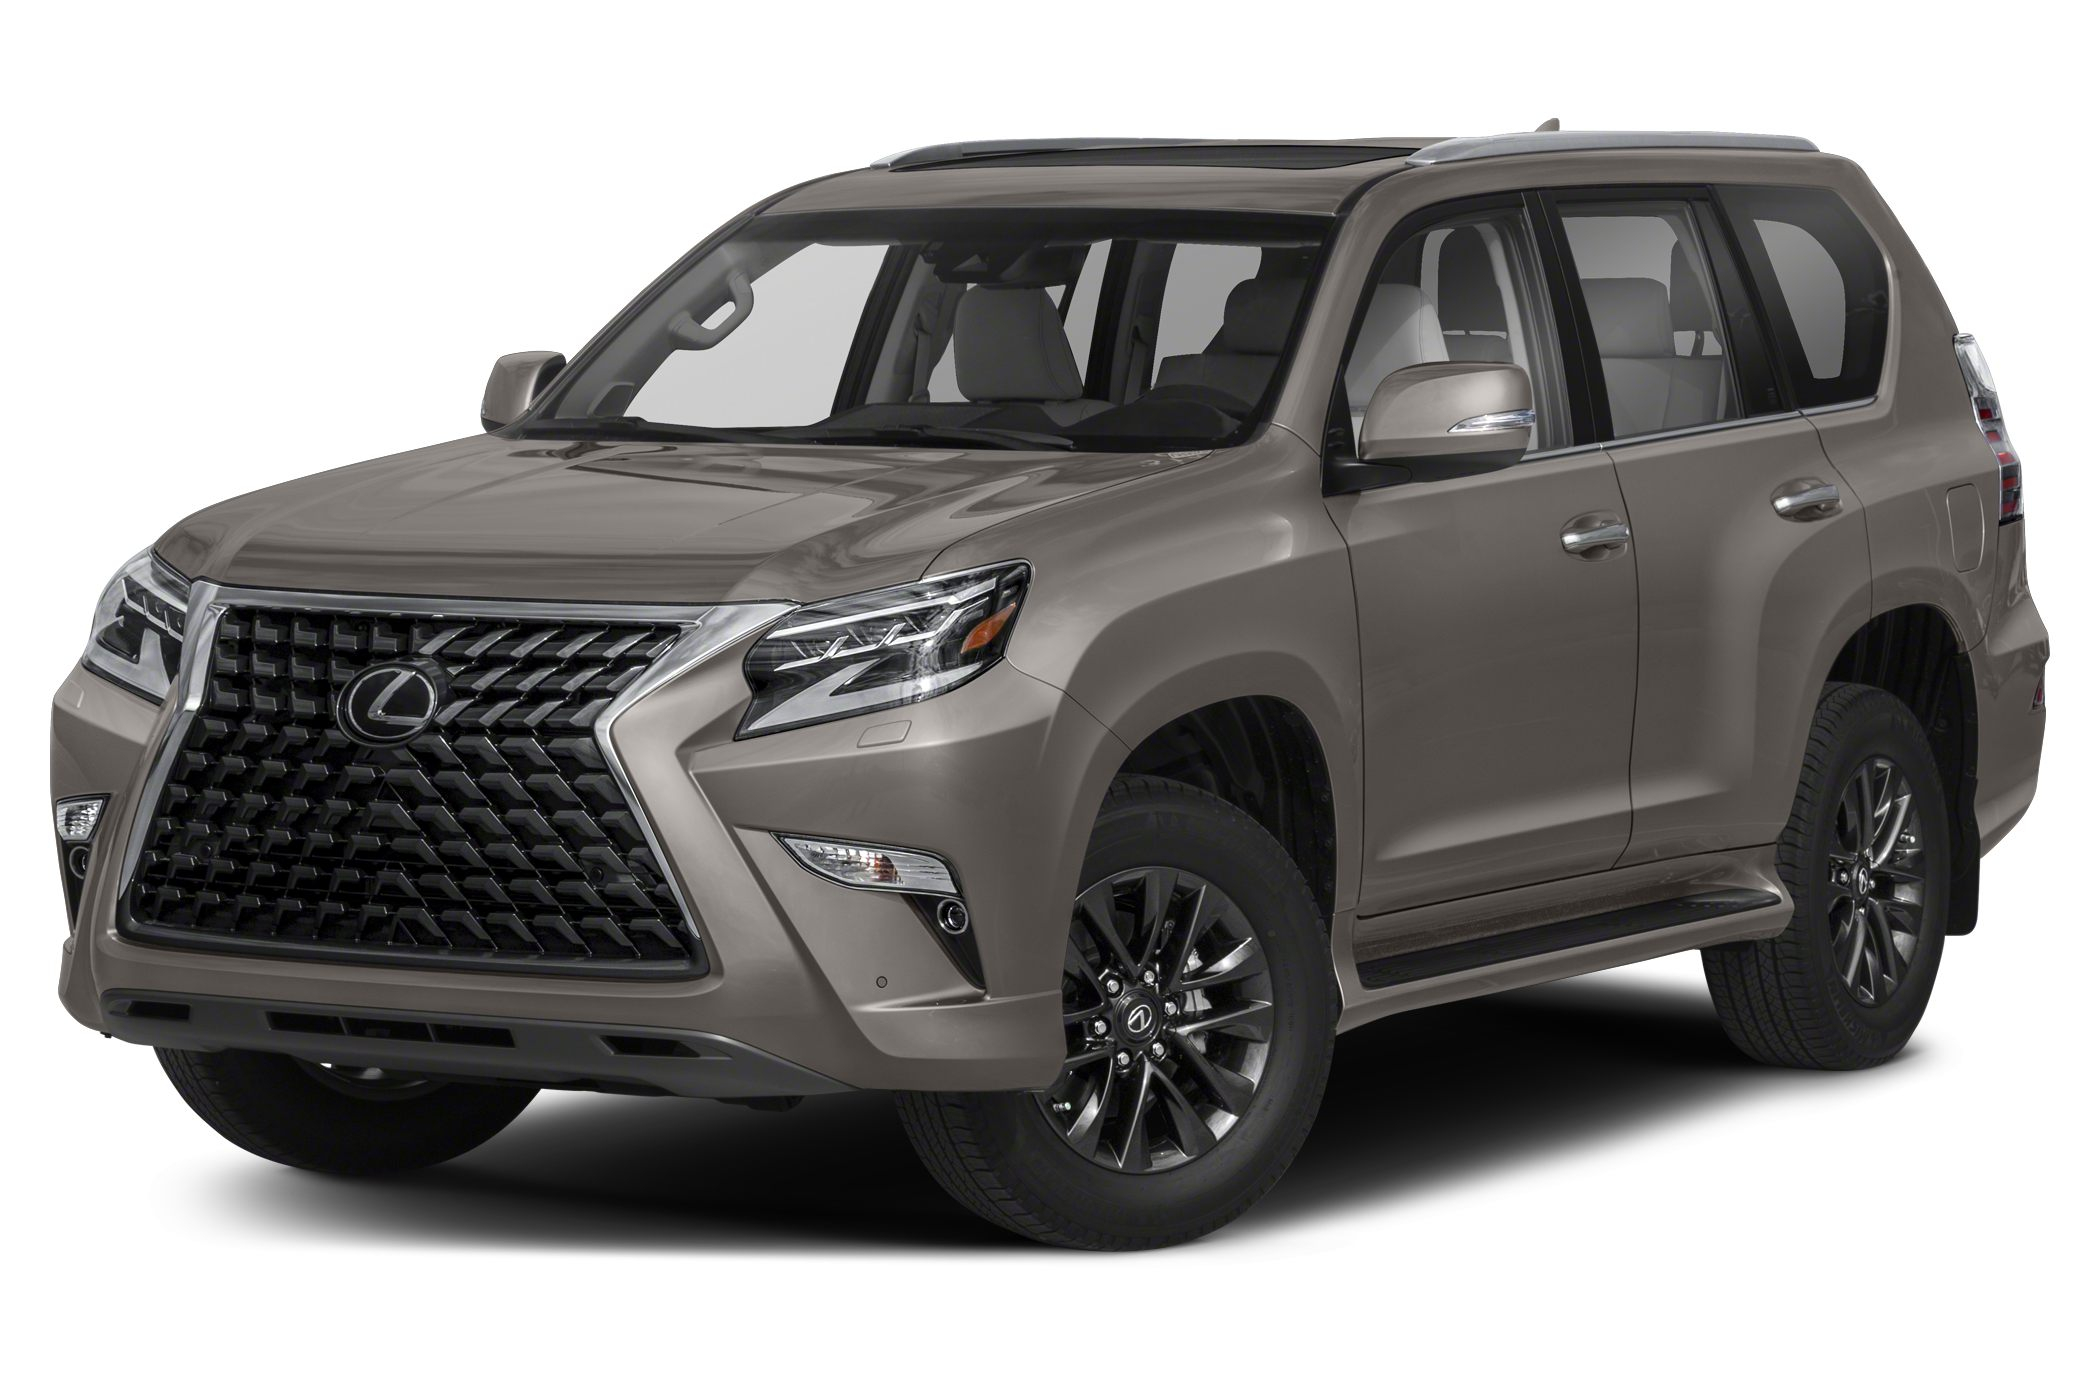 new 2021 lexus gx 460 safety rating, standard features